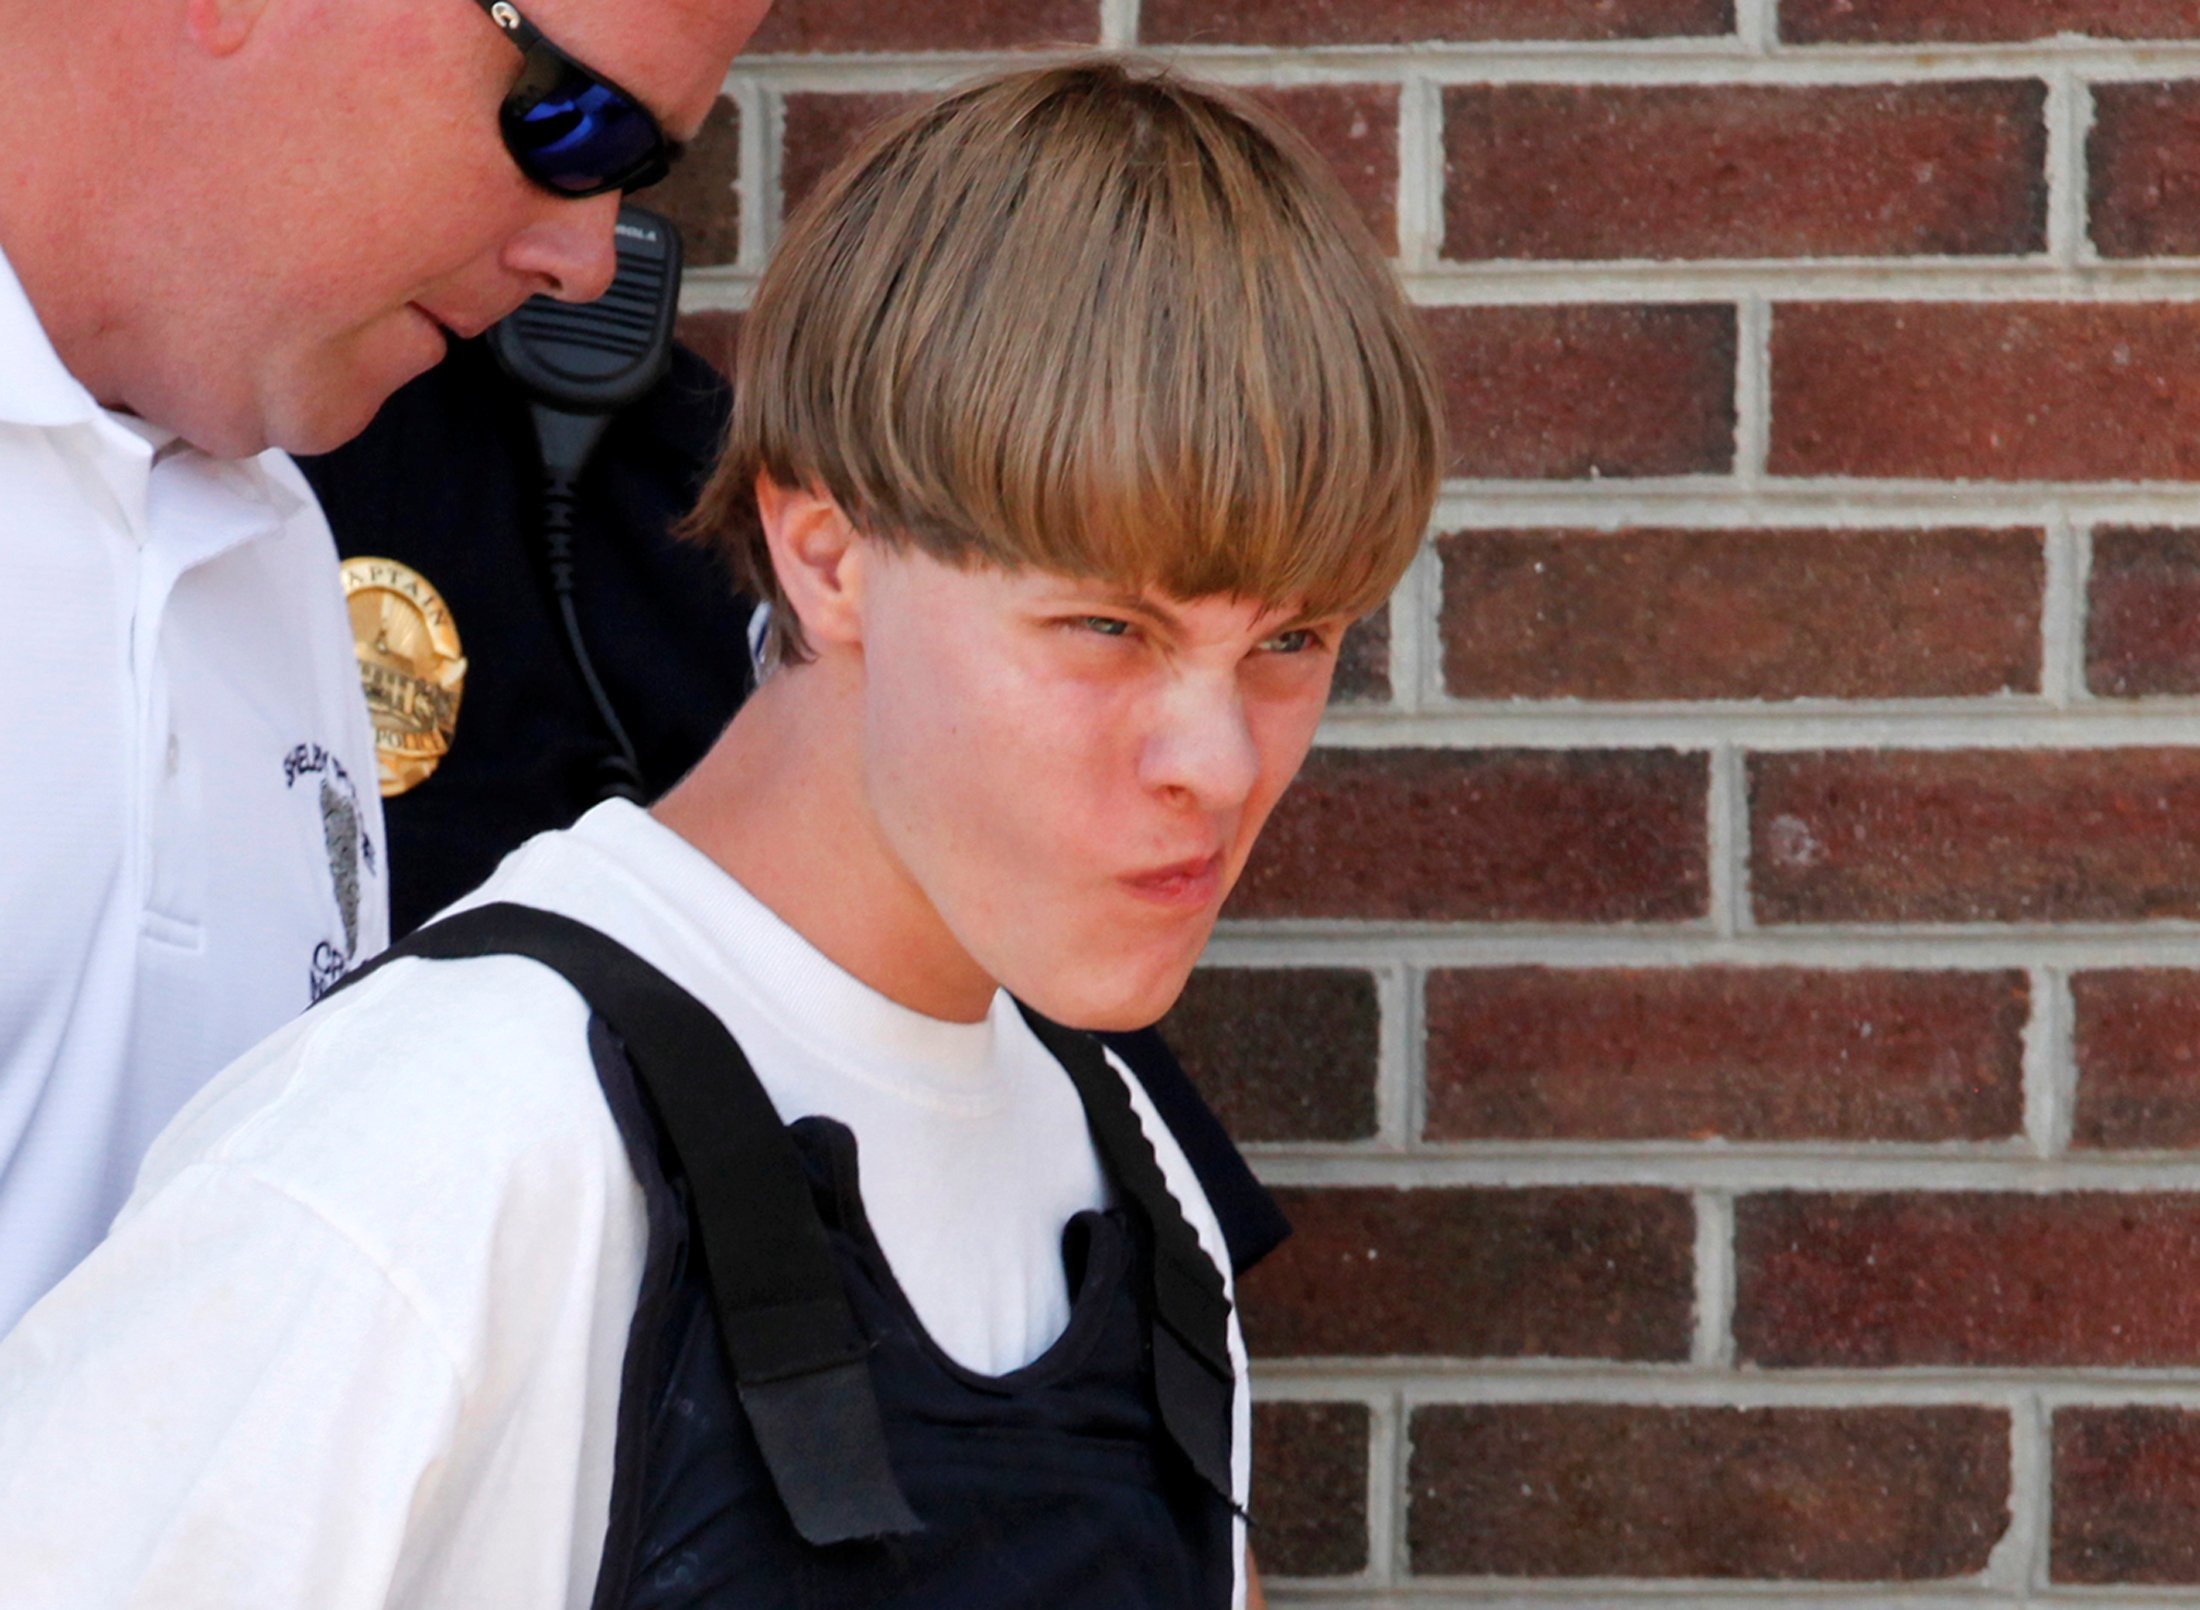 Police lead Dylann Roof into the courthouse in Shelby, NC, June 18, 2015.